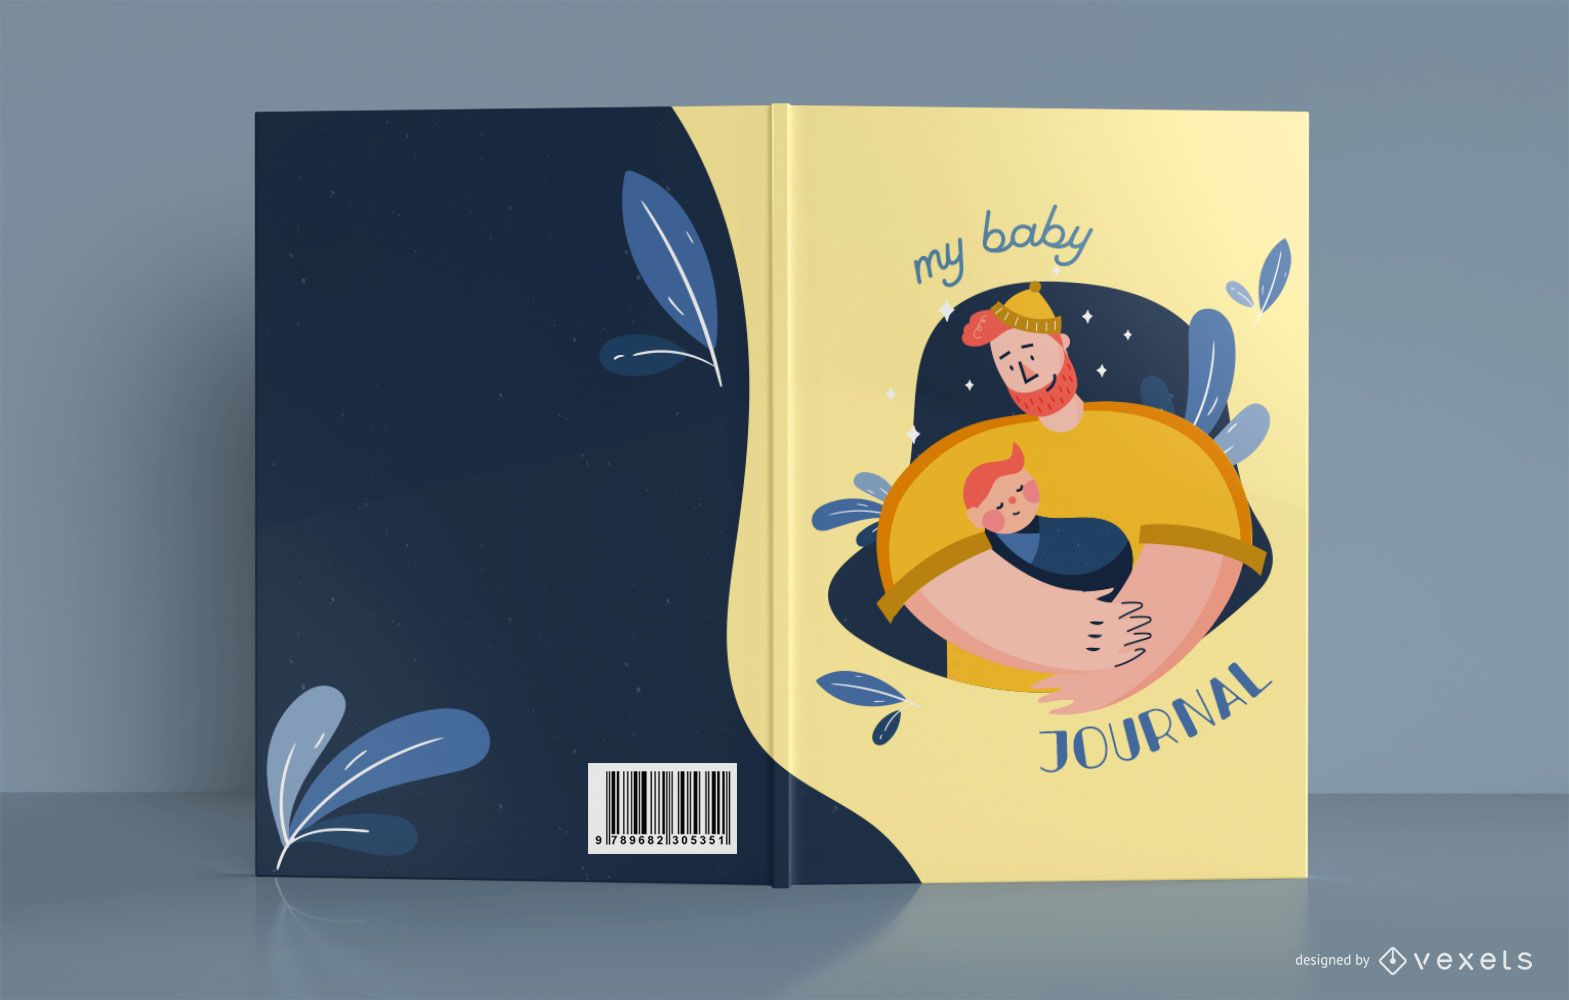 My Baby Journal Father Book Cover Design